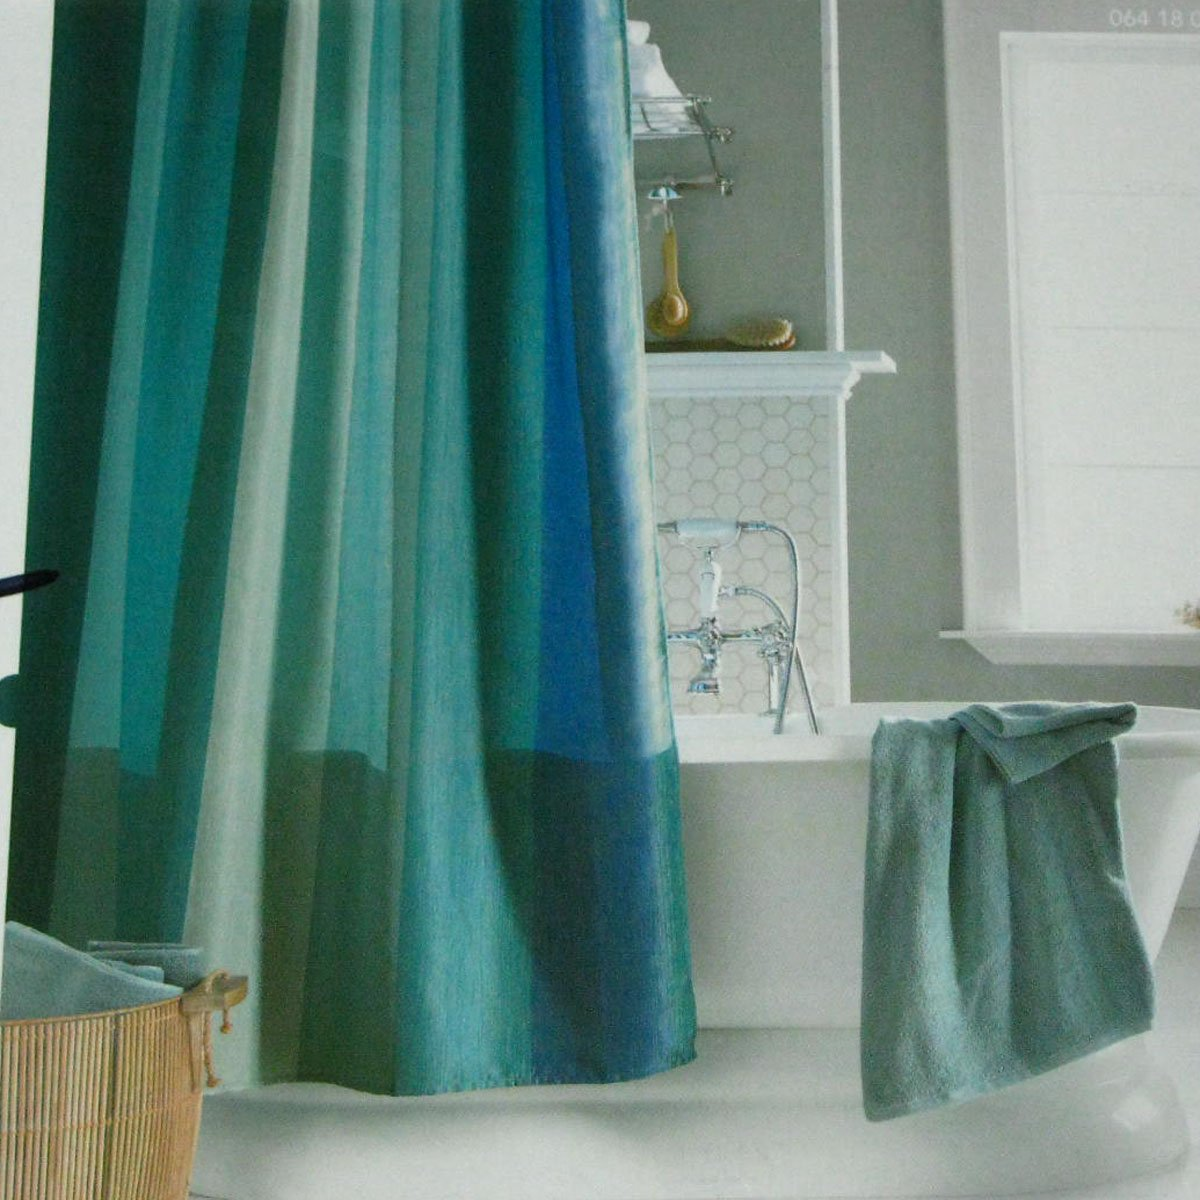 Target aquamarine multistripe blue aqua green fabric - Target bathroom shower curtain sets ...